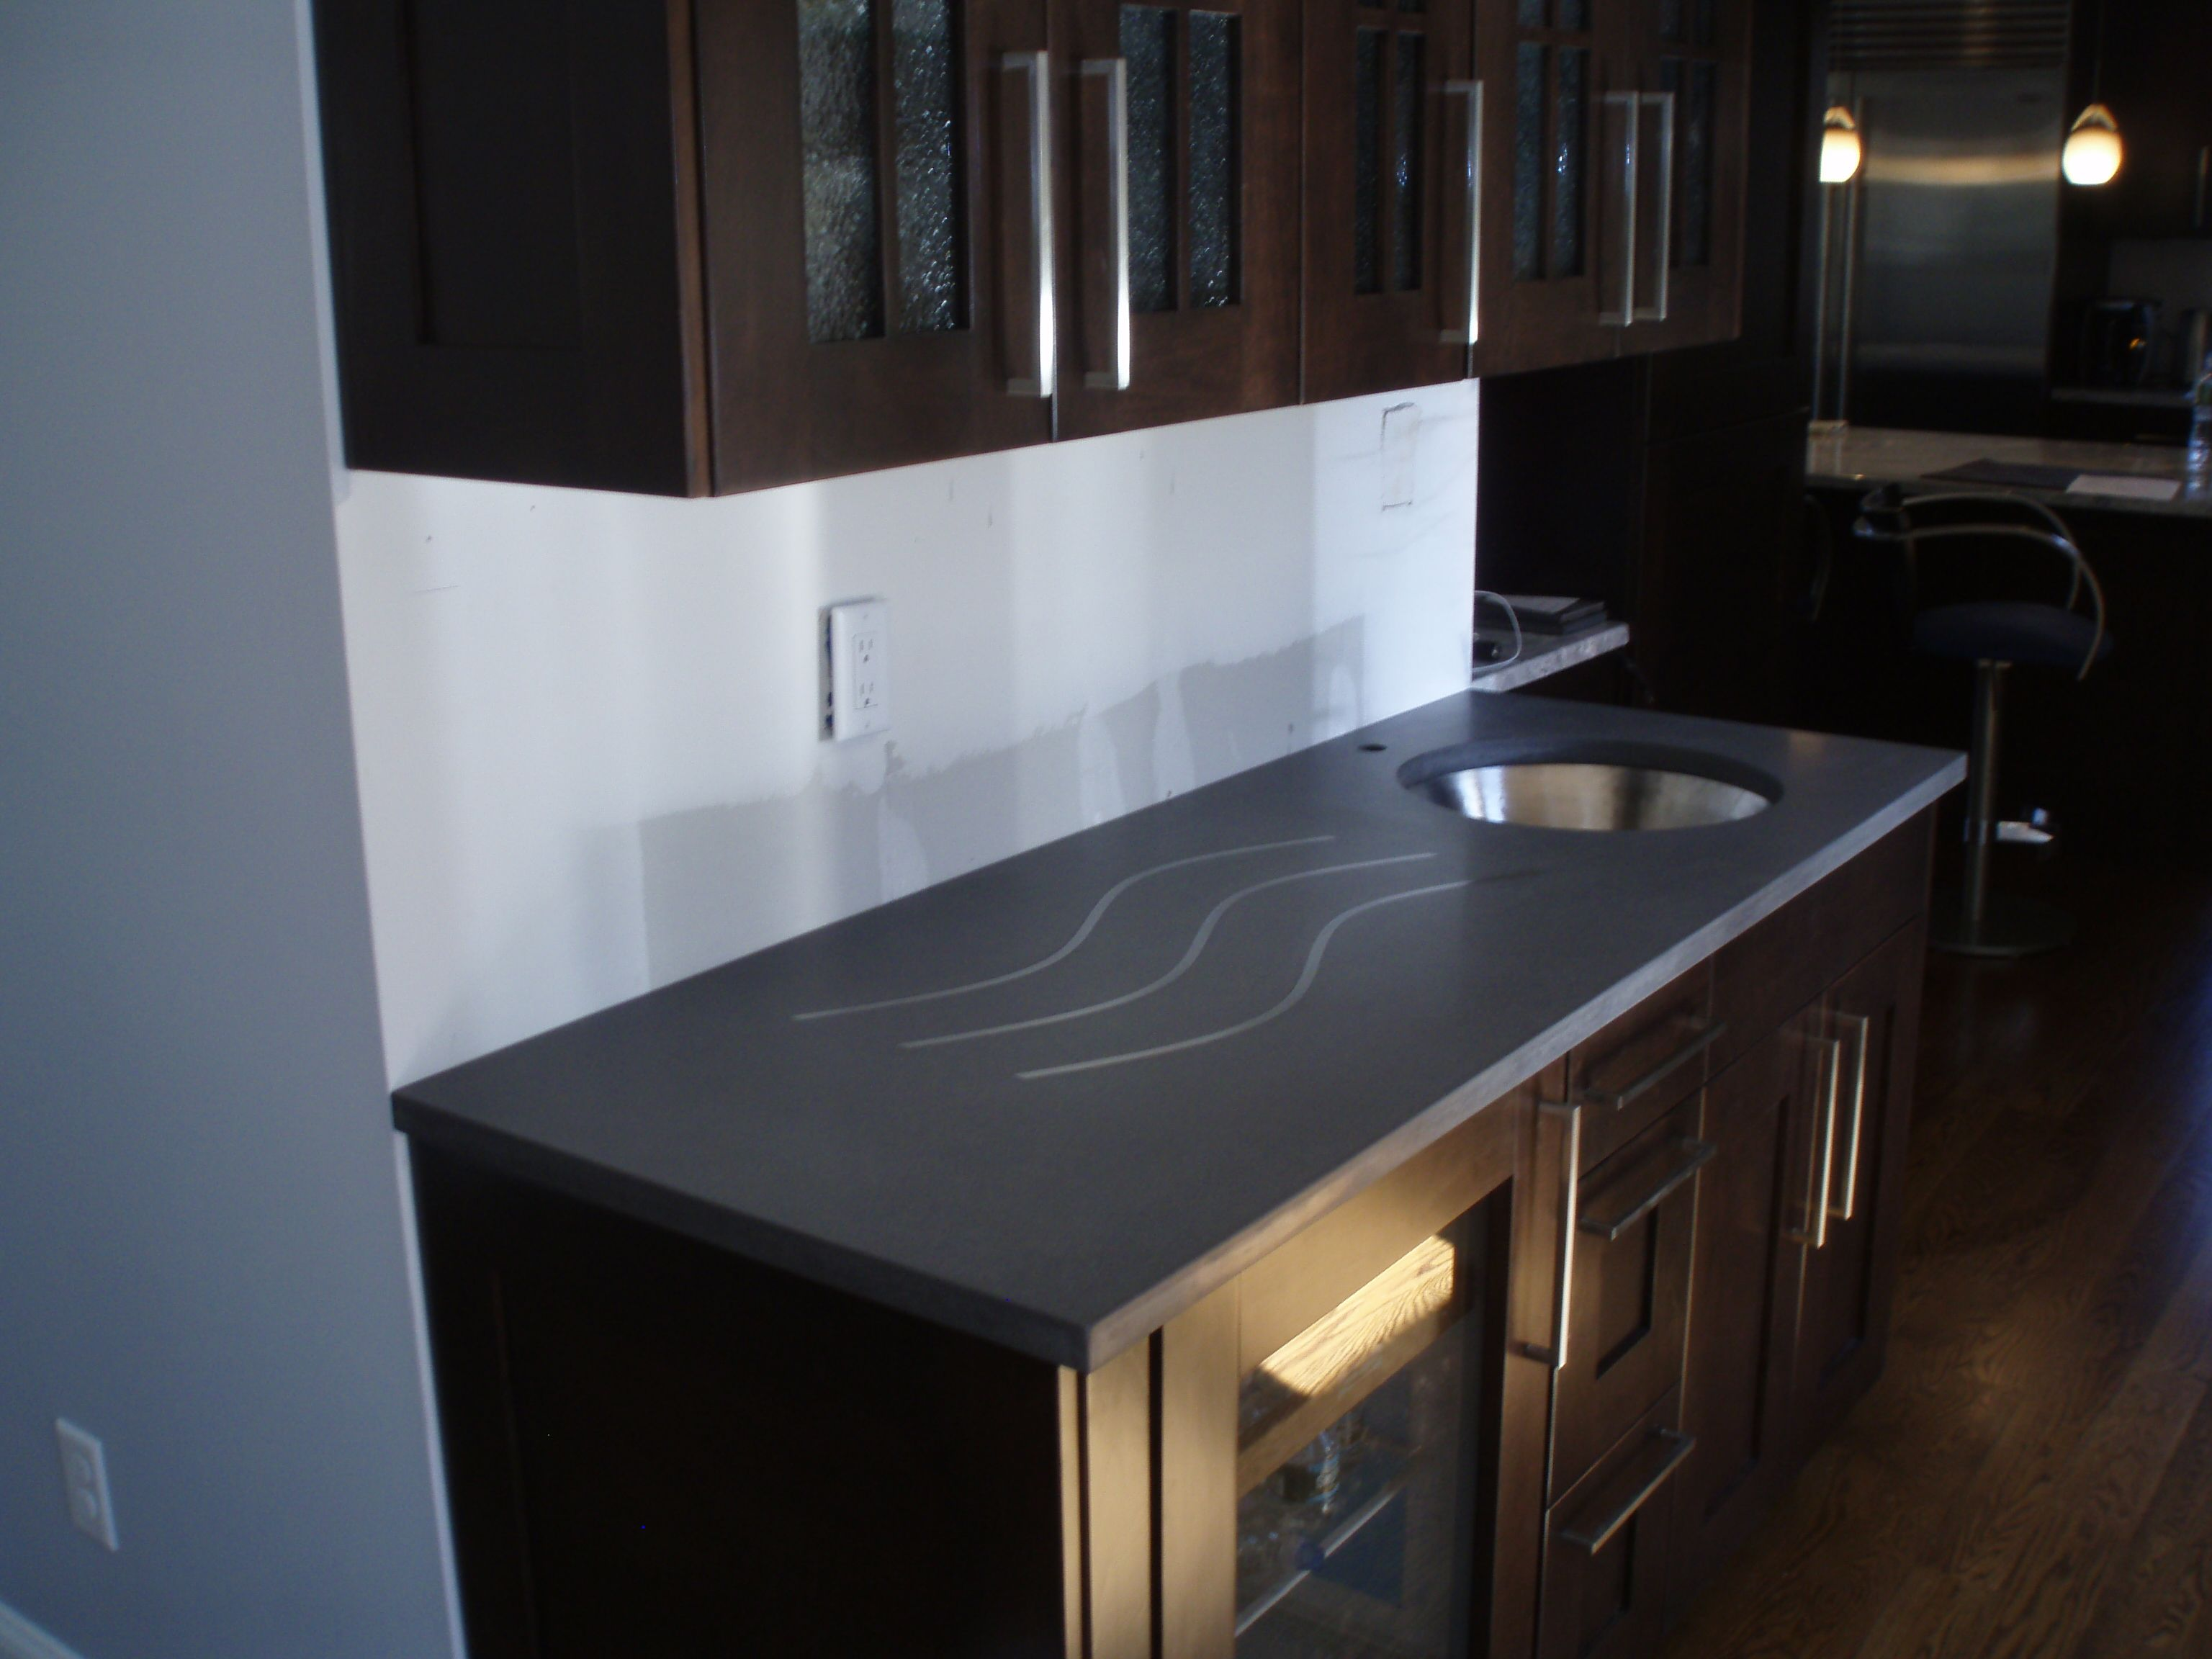 Gray Concrete Countertop With Undermount Sink Cutout And